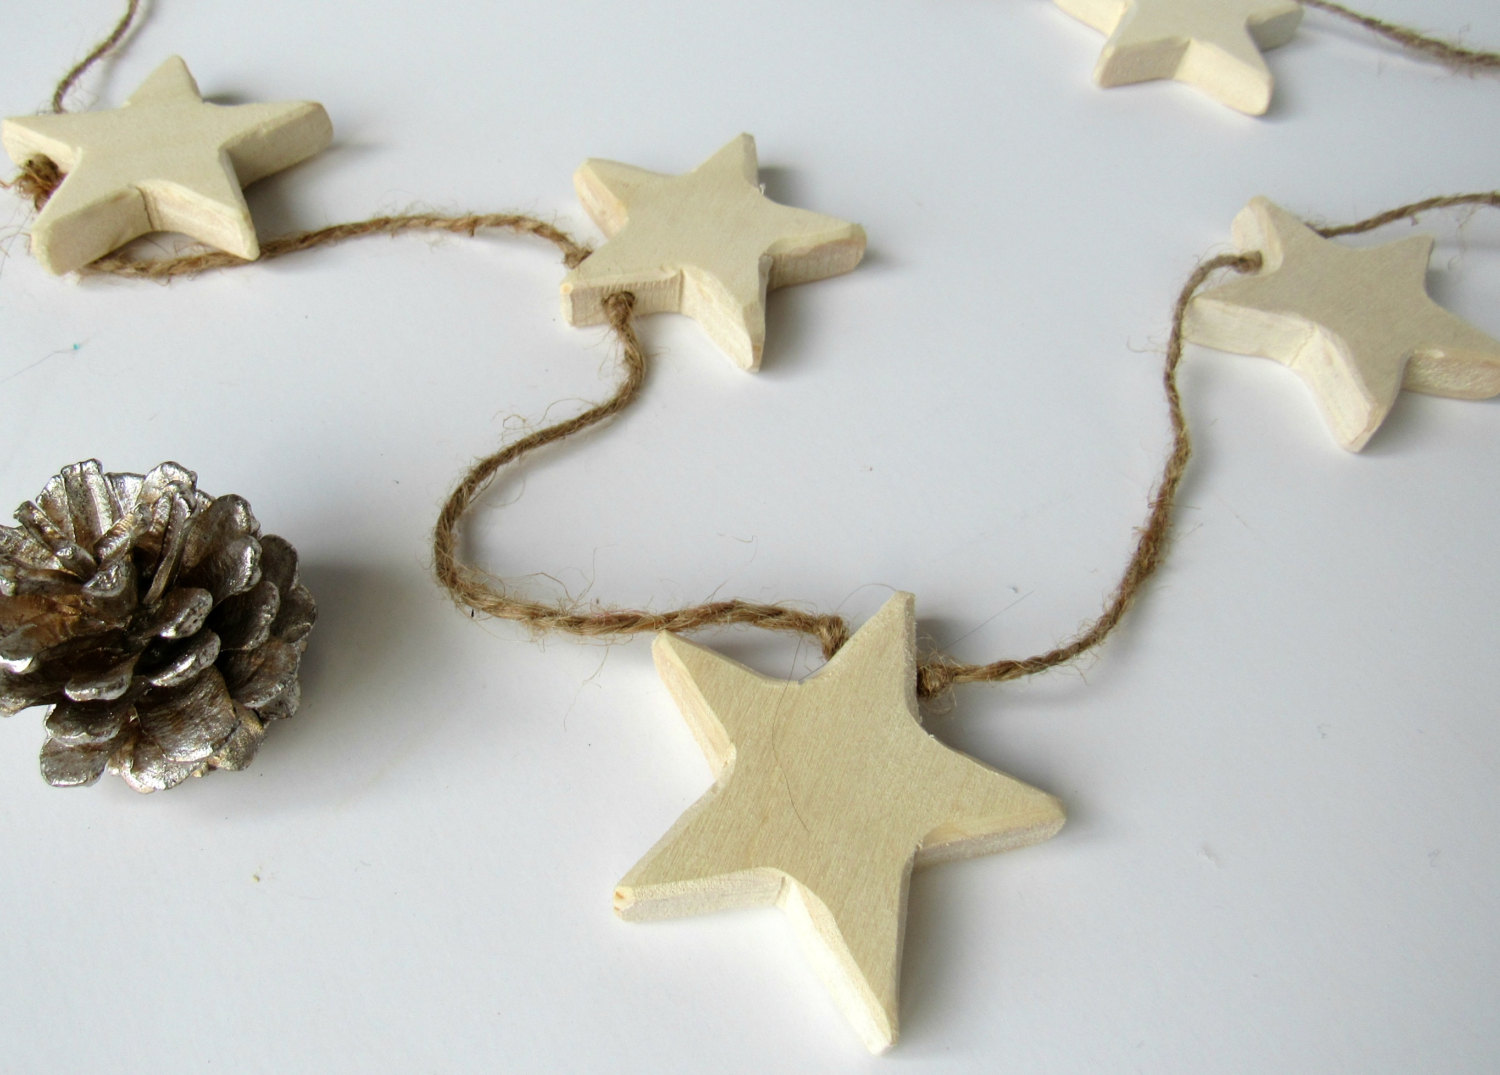 Michigan Gift Idea: Handmade Home Decor From Wood By Al // Featured - Wooden Star Twine Garland (via Wading in Big Shoes)